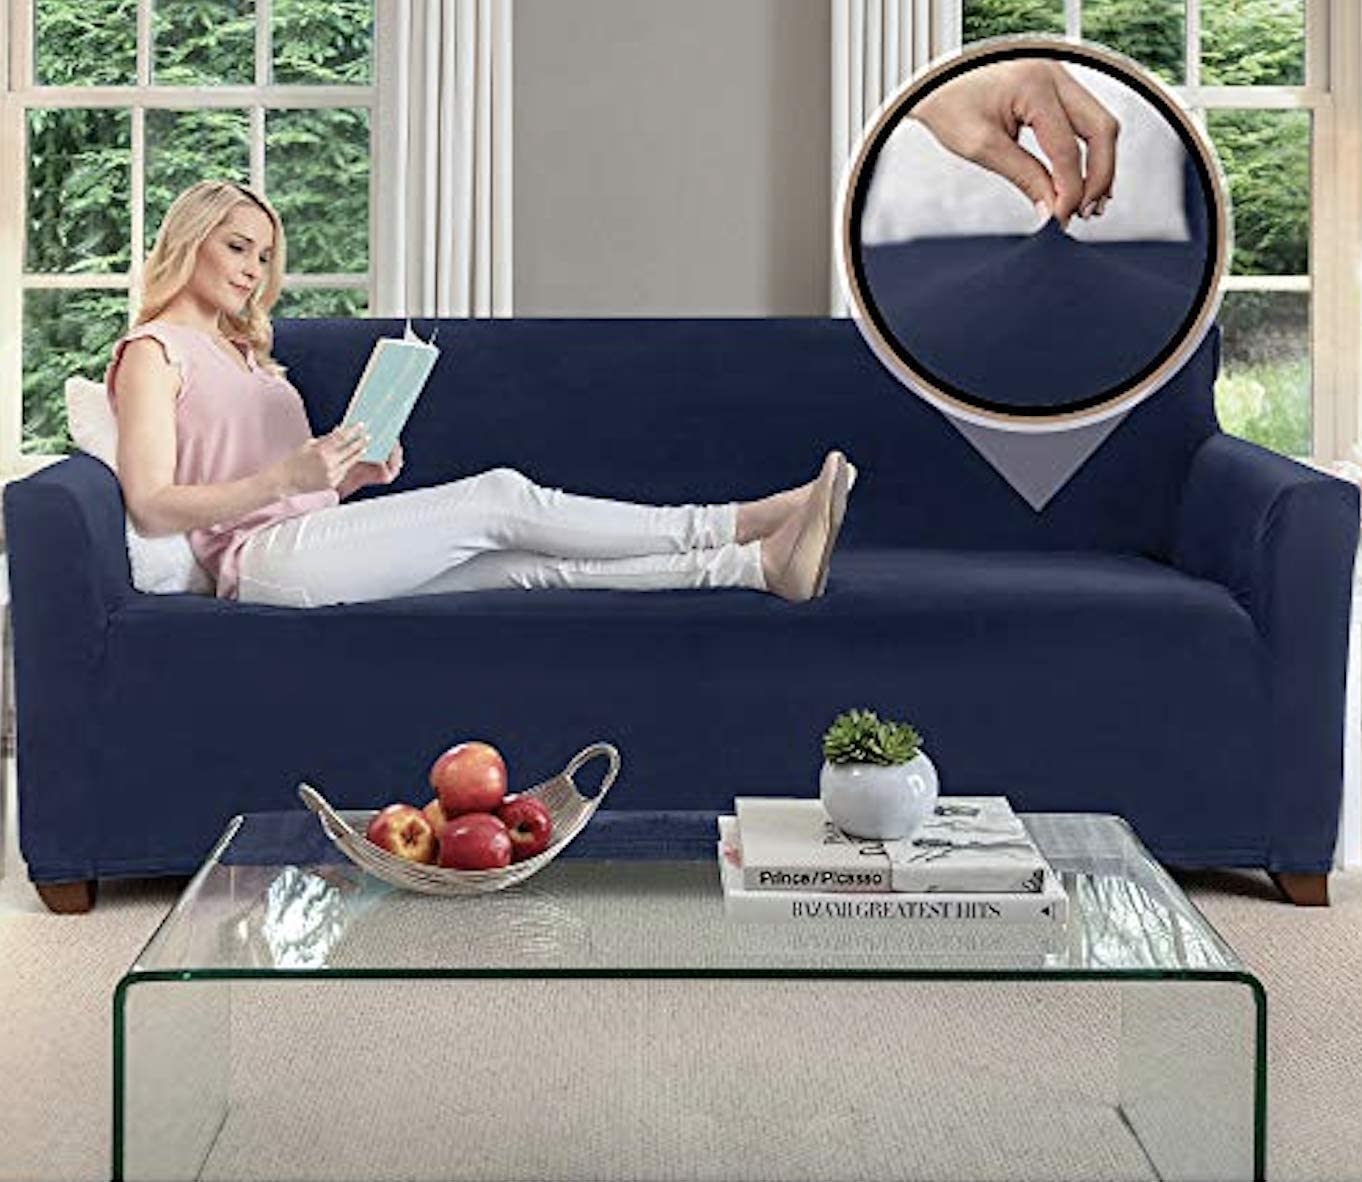 Gorilla Grip Original Fitted Velvet 1 Piece Large Sofa Protector for Seat Width to 70 Inch, Stretchy Furniture Slipcover, Fastener Straps, Spandex Couch Slip Cover Throw for Pets, Sofa, Navy Blue